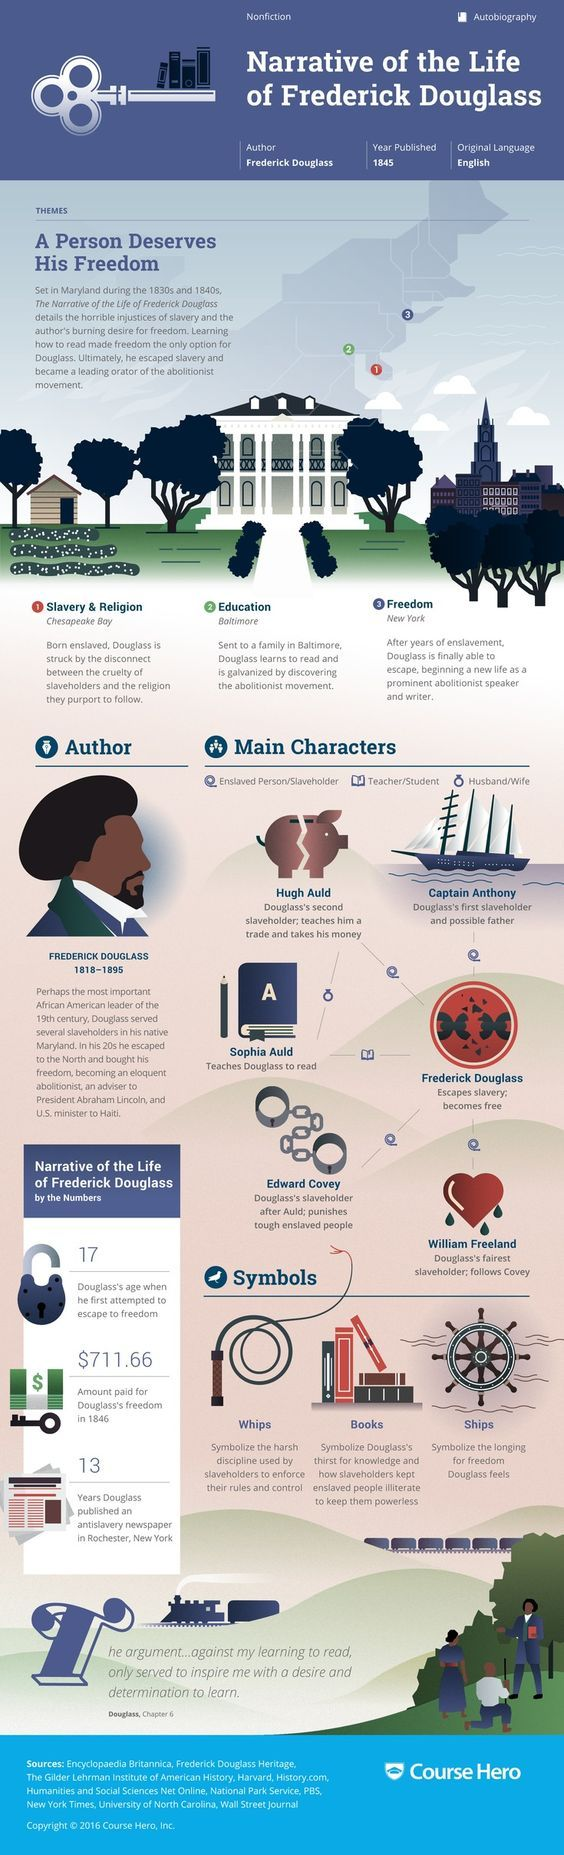 a literary analysis of the narrative of the life of frederick douglass